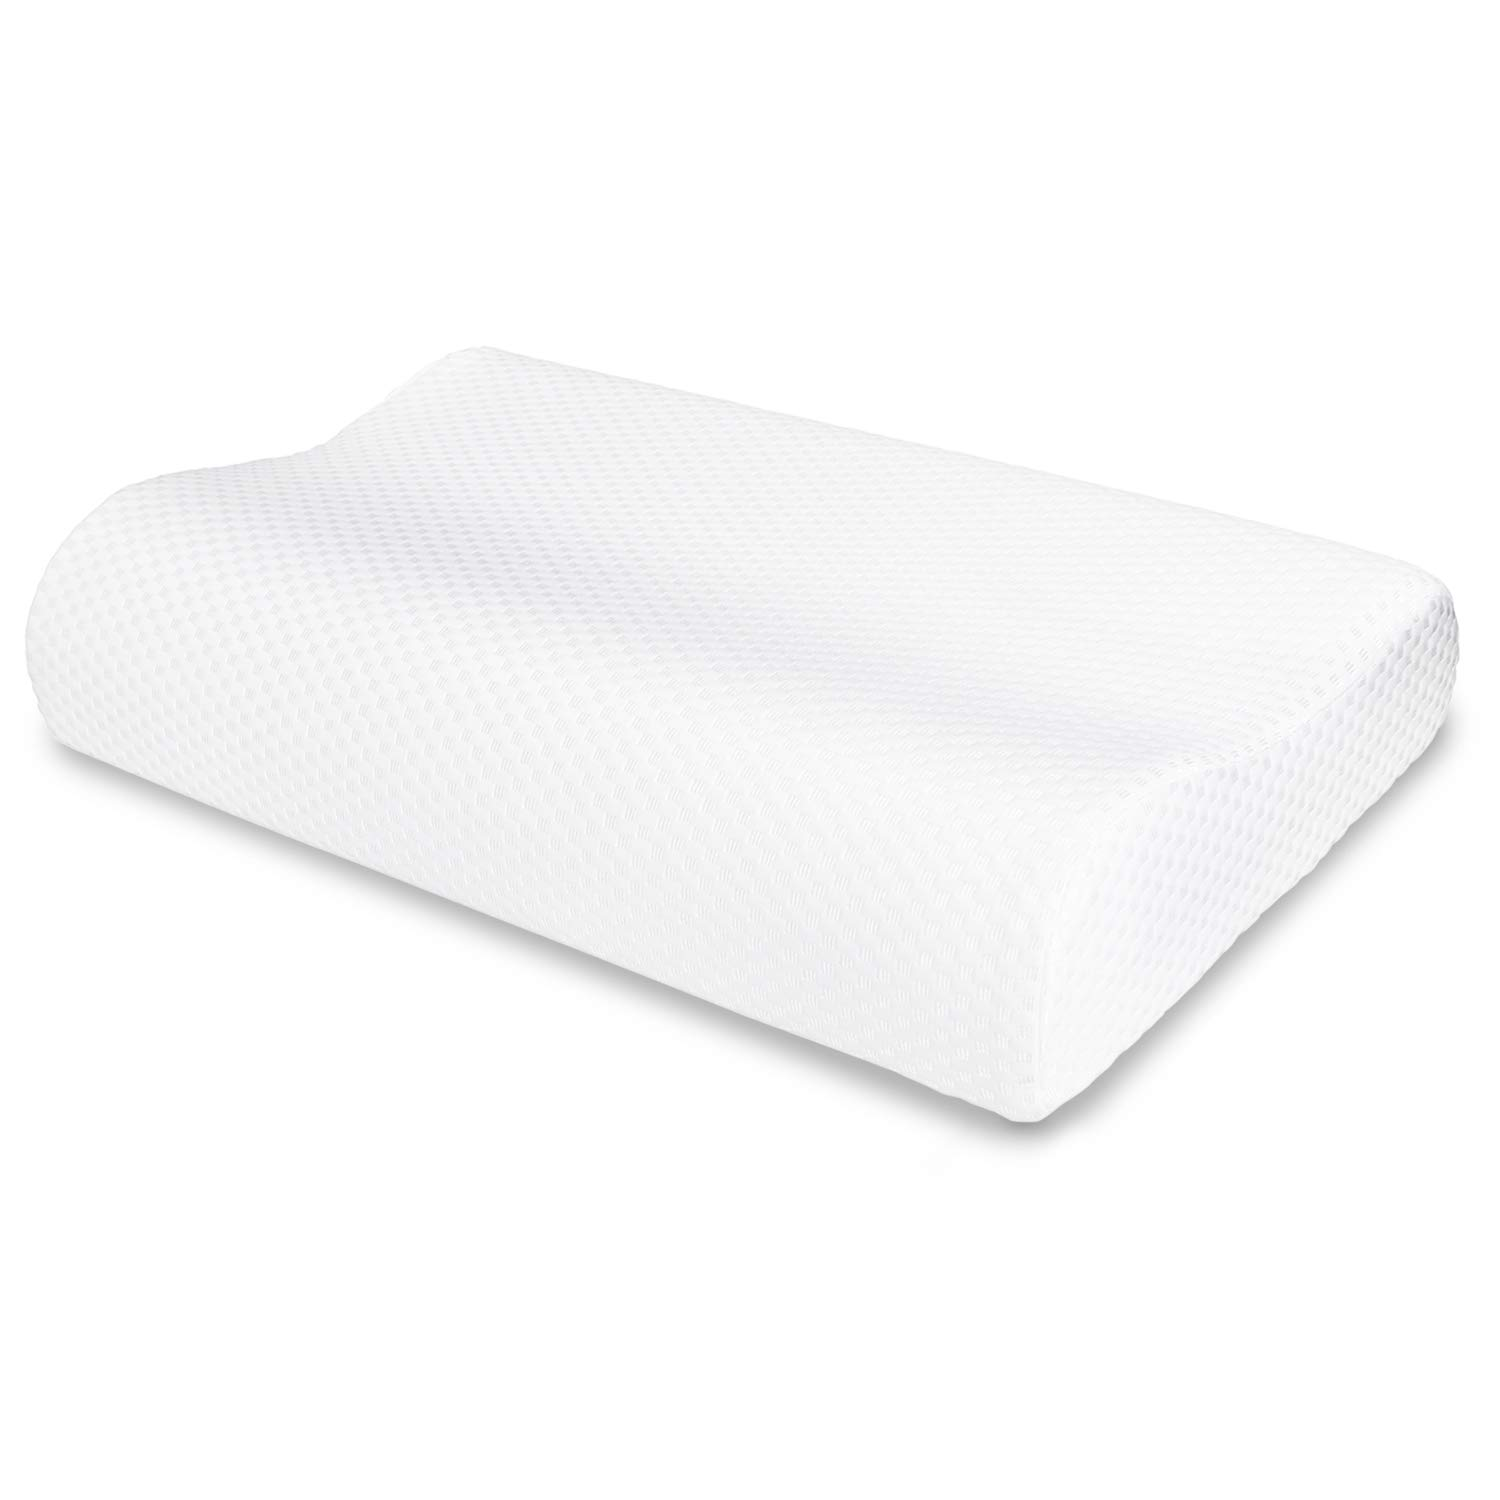 VECELO Memory Foam Contour Pillow, for Side Sleeper-Relieve Neck Pain with Washable Zippered Soft Cover-Standard Size for Adult & Children, White